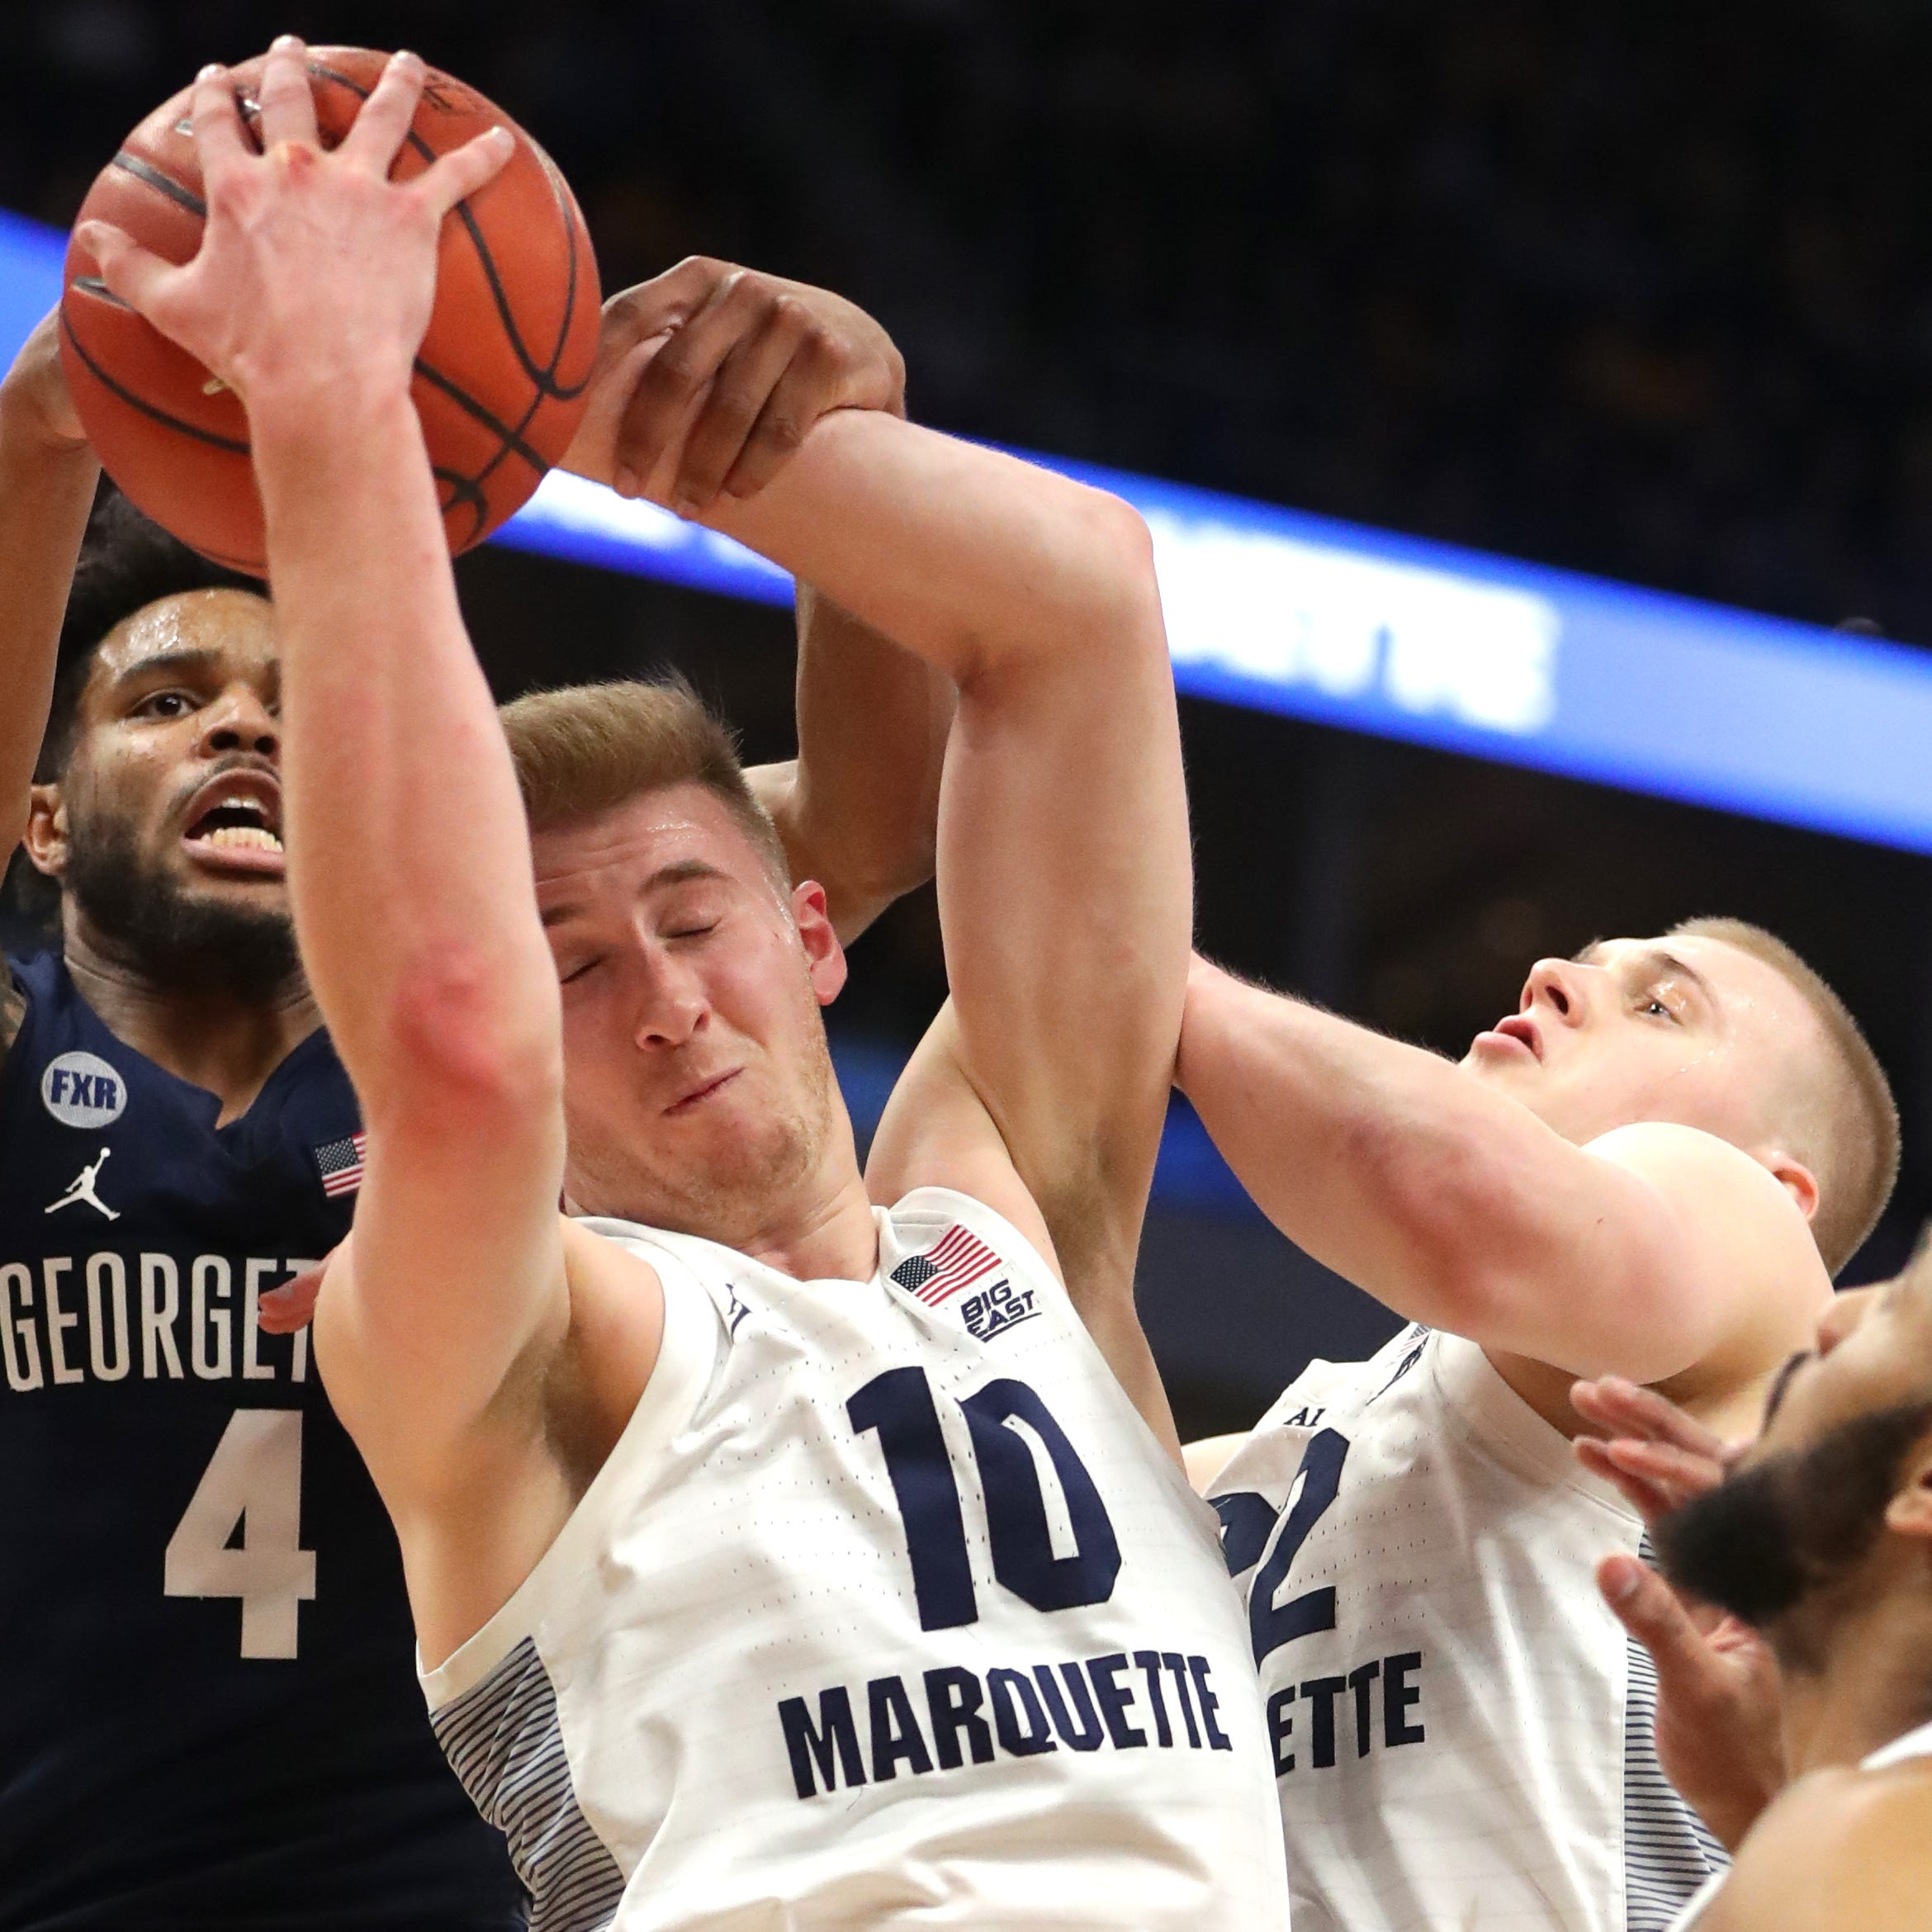 Hauser brothers transferring from Marquette